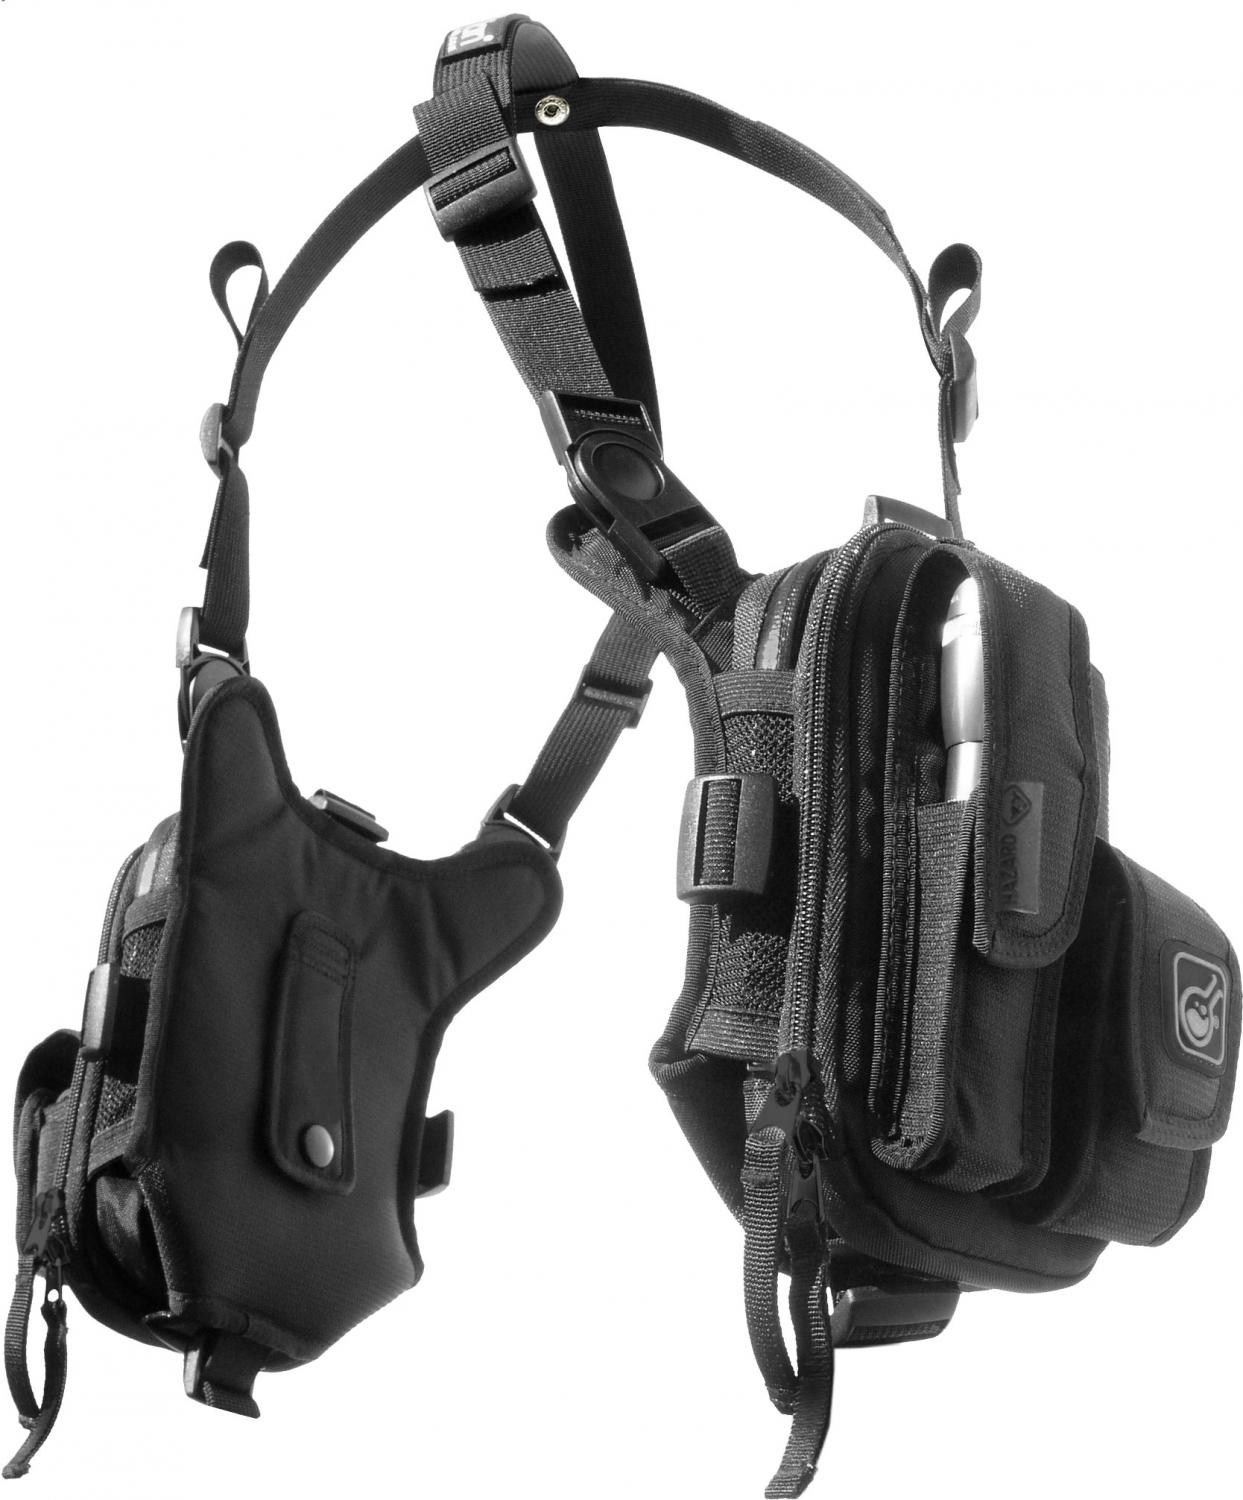 Hazard 4 Covert Loader RG Multi-Configuration Small-Pack System, Black